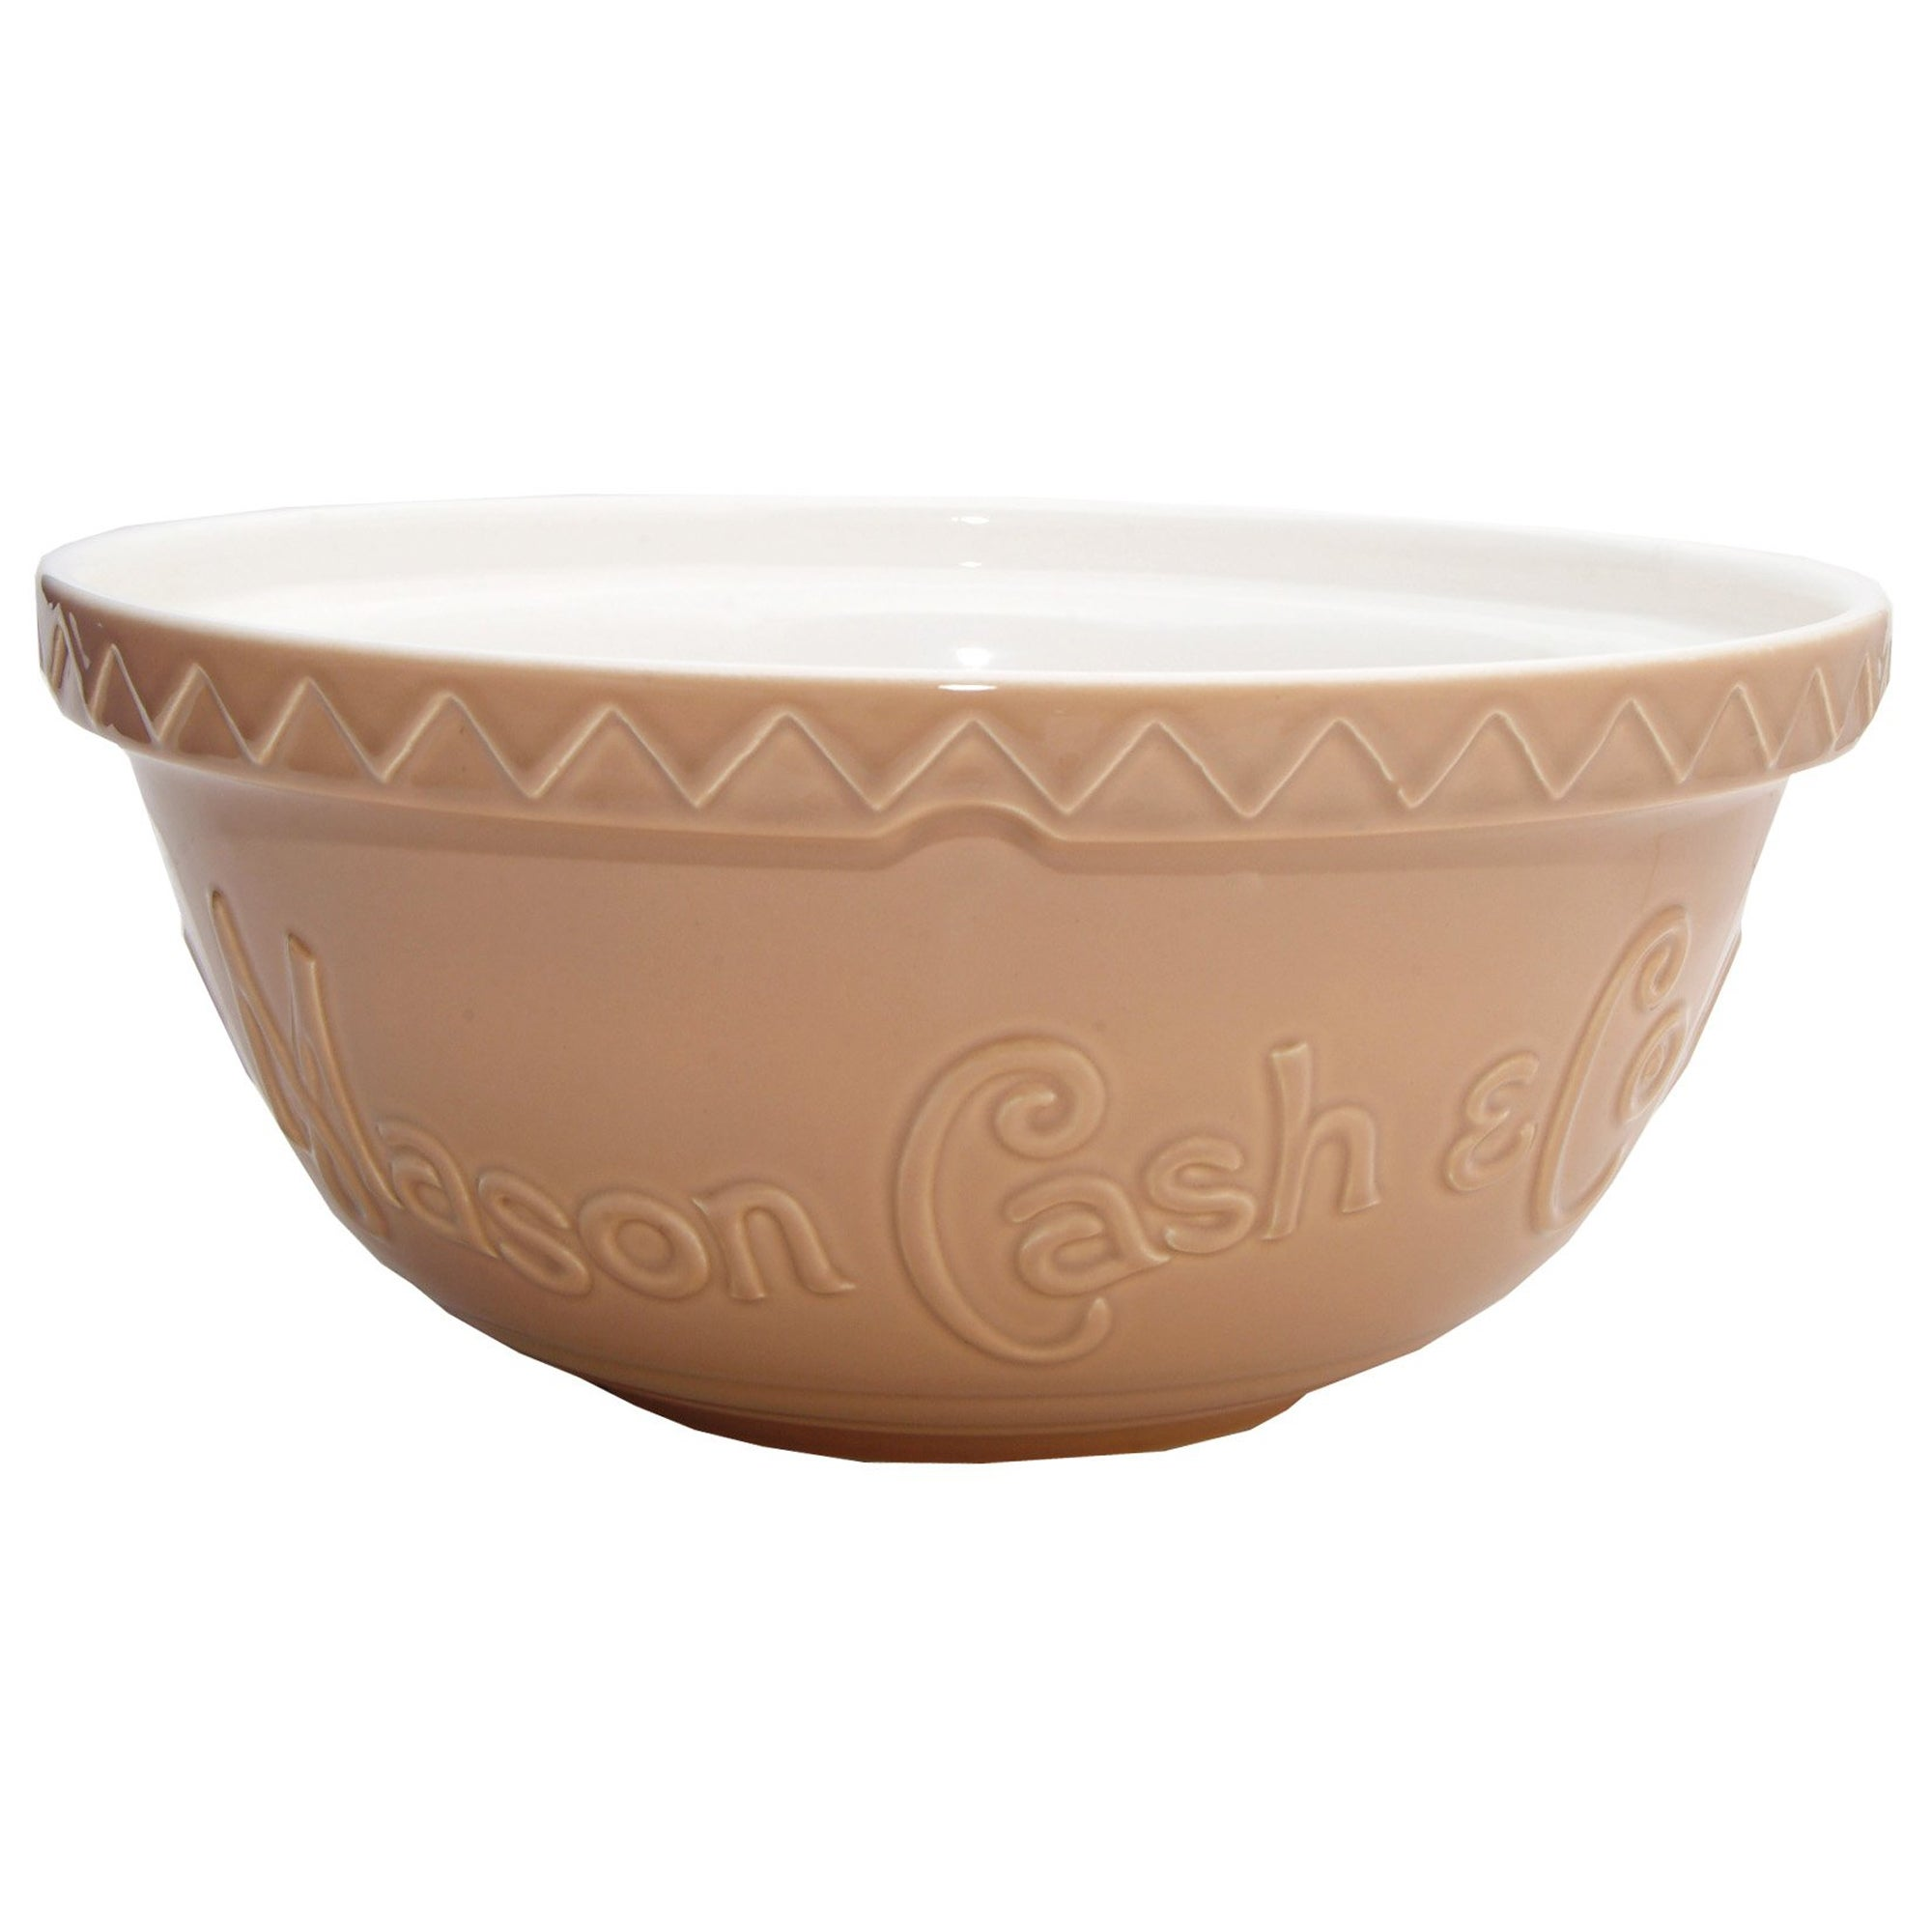 Mason Cash Heritage Mixing Bowl